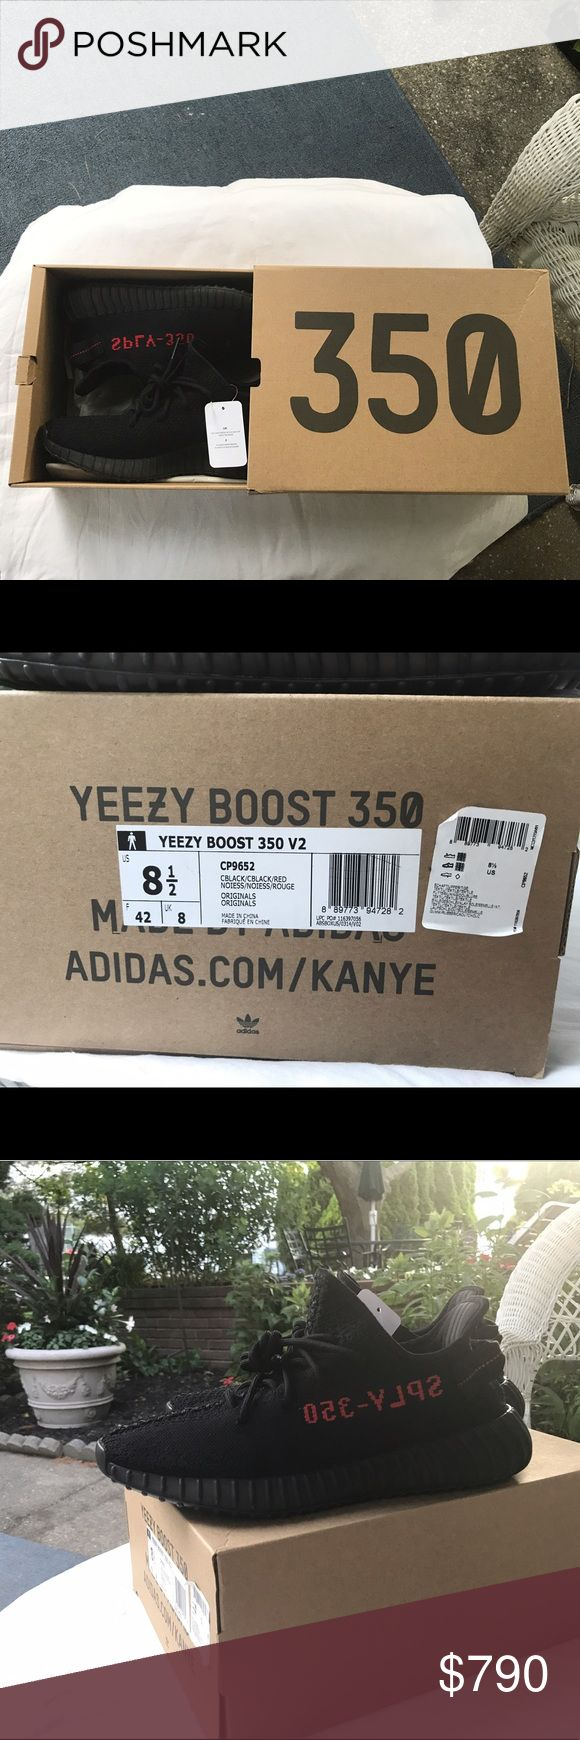 "Yeezy 350 V2 ""Bred"" worn 3-4 times size 8.5 Yeezys that I wore a few times and still have the original boxing, tags, and email receipt for (receipt is in the last picture). The only signs of wear are on the boost window on the bottom (see pictures). These have gone up in value recently but I'm definitely willing to negotiate! Yeezy Shoes Sneakers"